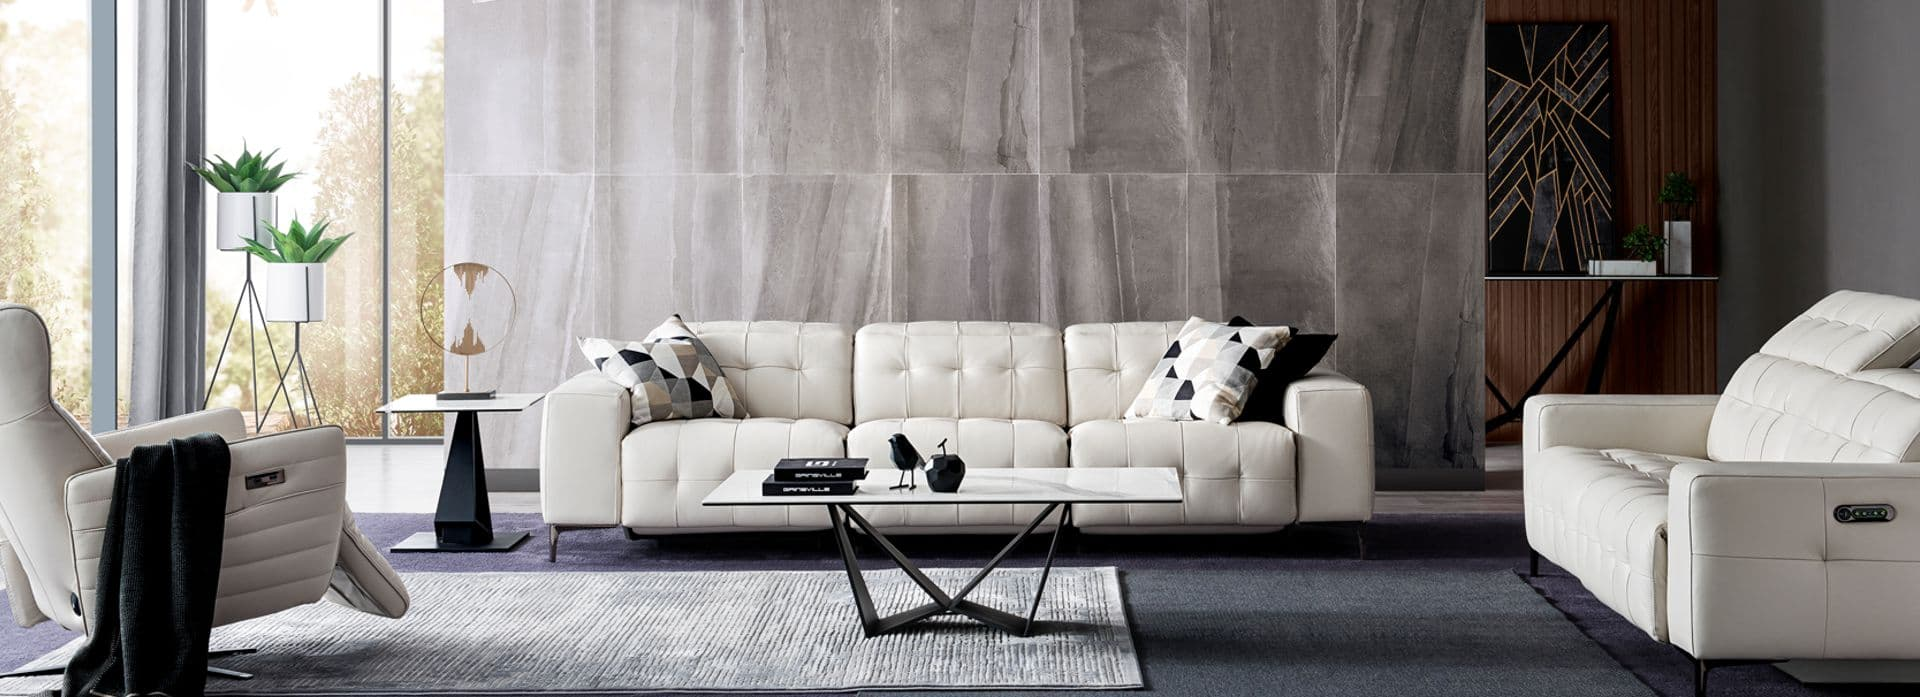 Best Sofas Australia Best Furniture Store Melbourne Australia Luxury Modern Furniture